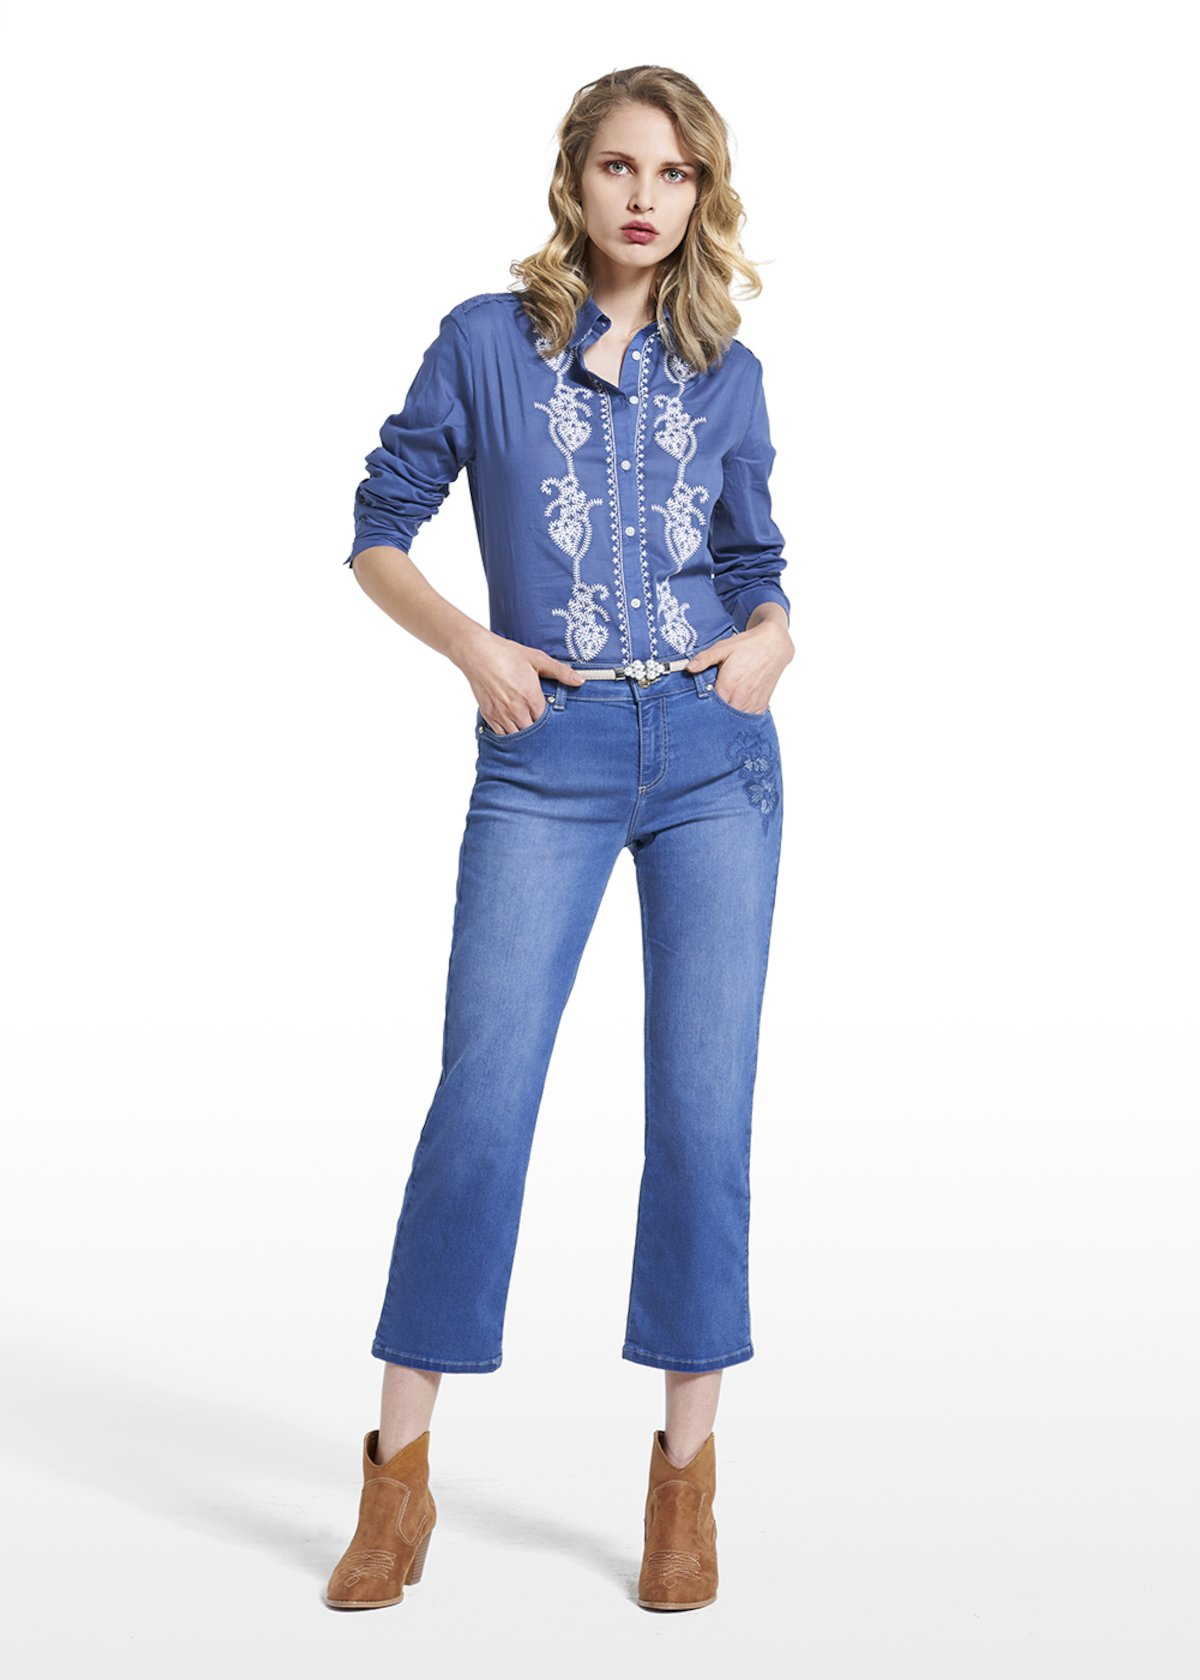 Jeans Pammy 5-pocket with slim le and flowers embroidery - Medium Denim - Woman